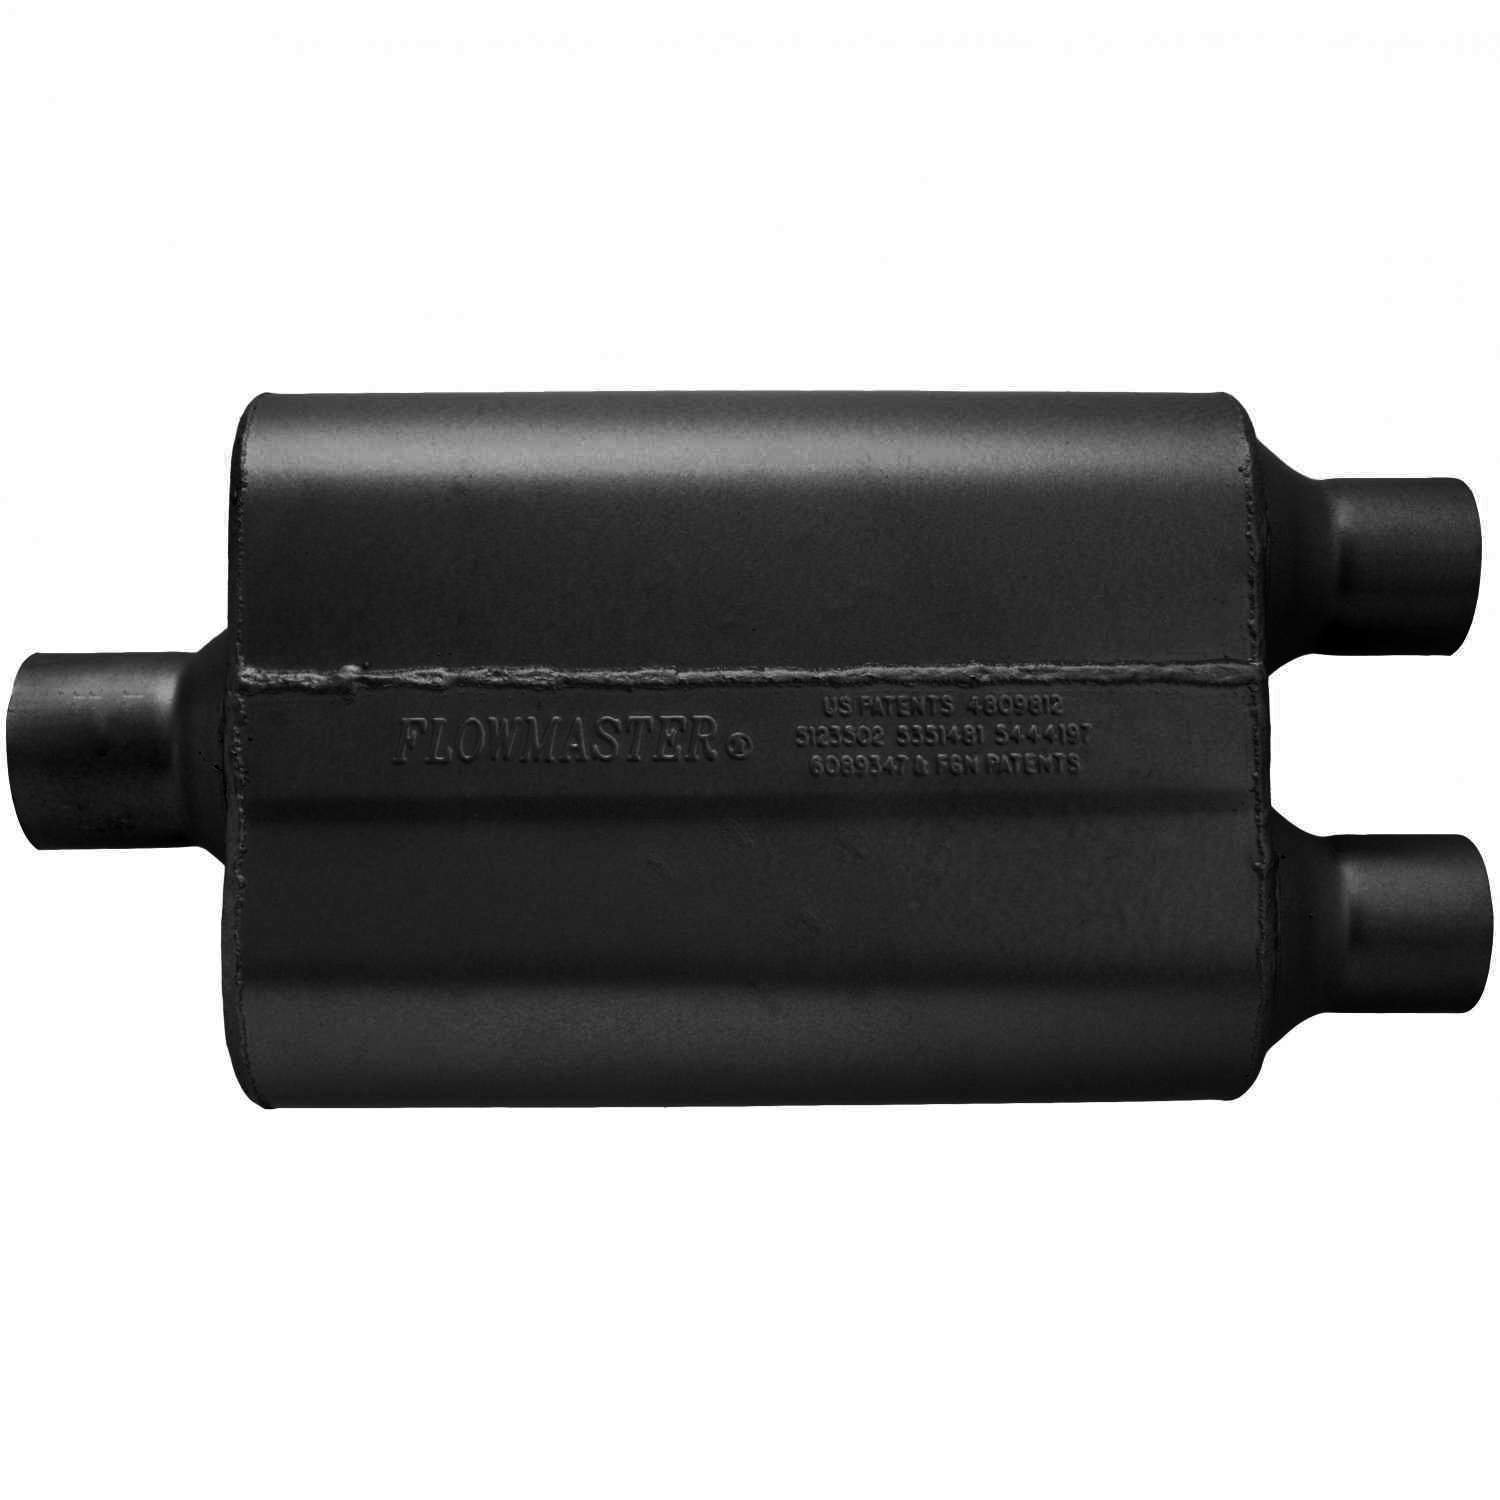 Aggressive Sound Flowmaster 9425422 40 Delta Flow Muffler 2.50 Center IN 2.25 Dual OUT